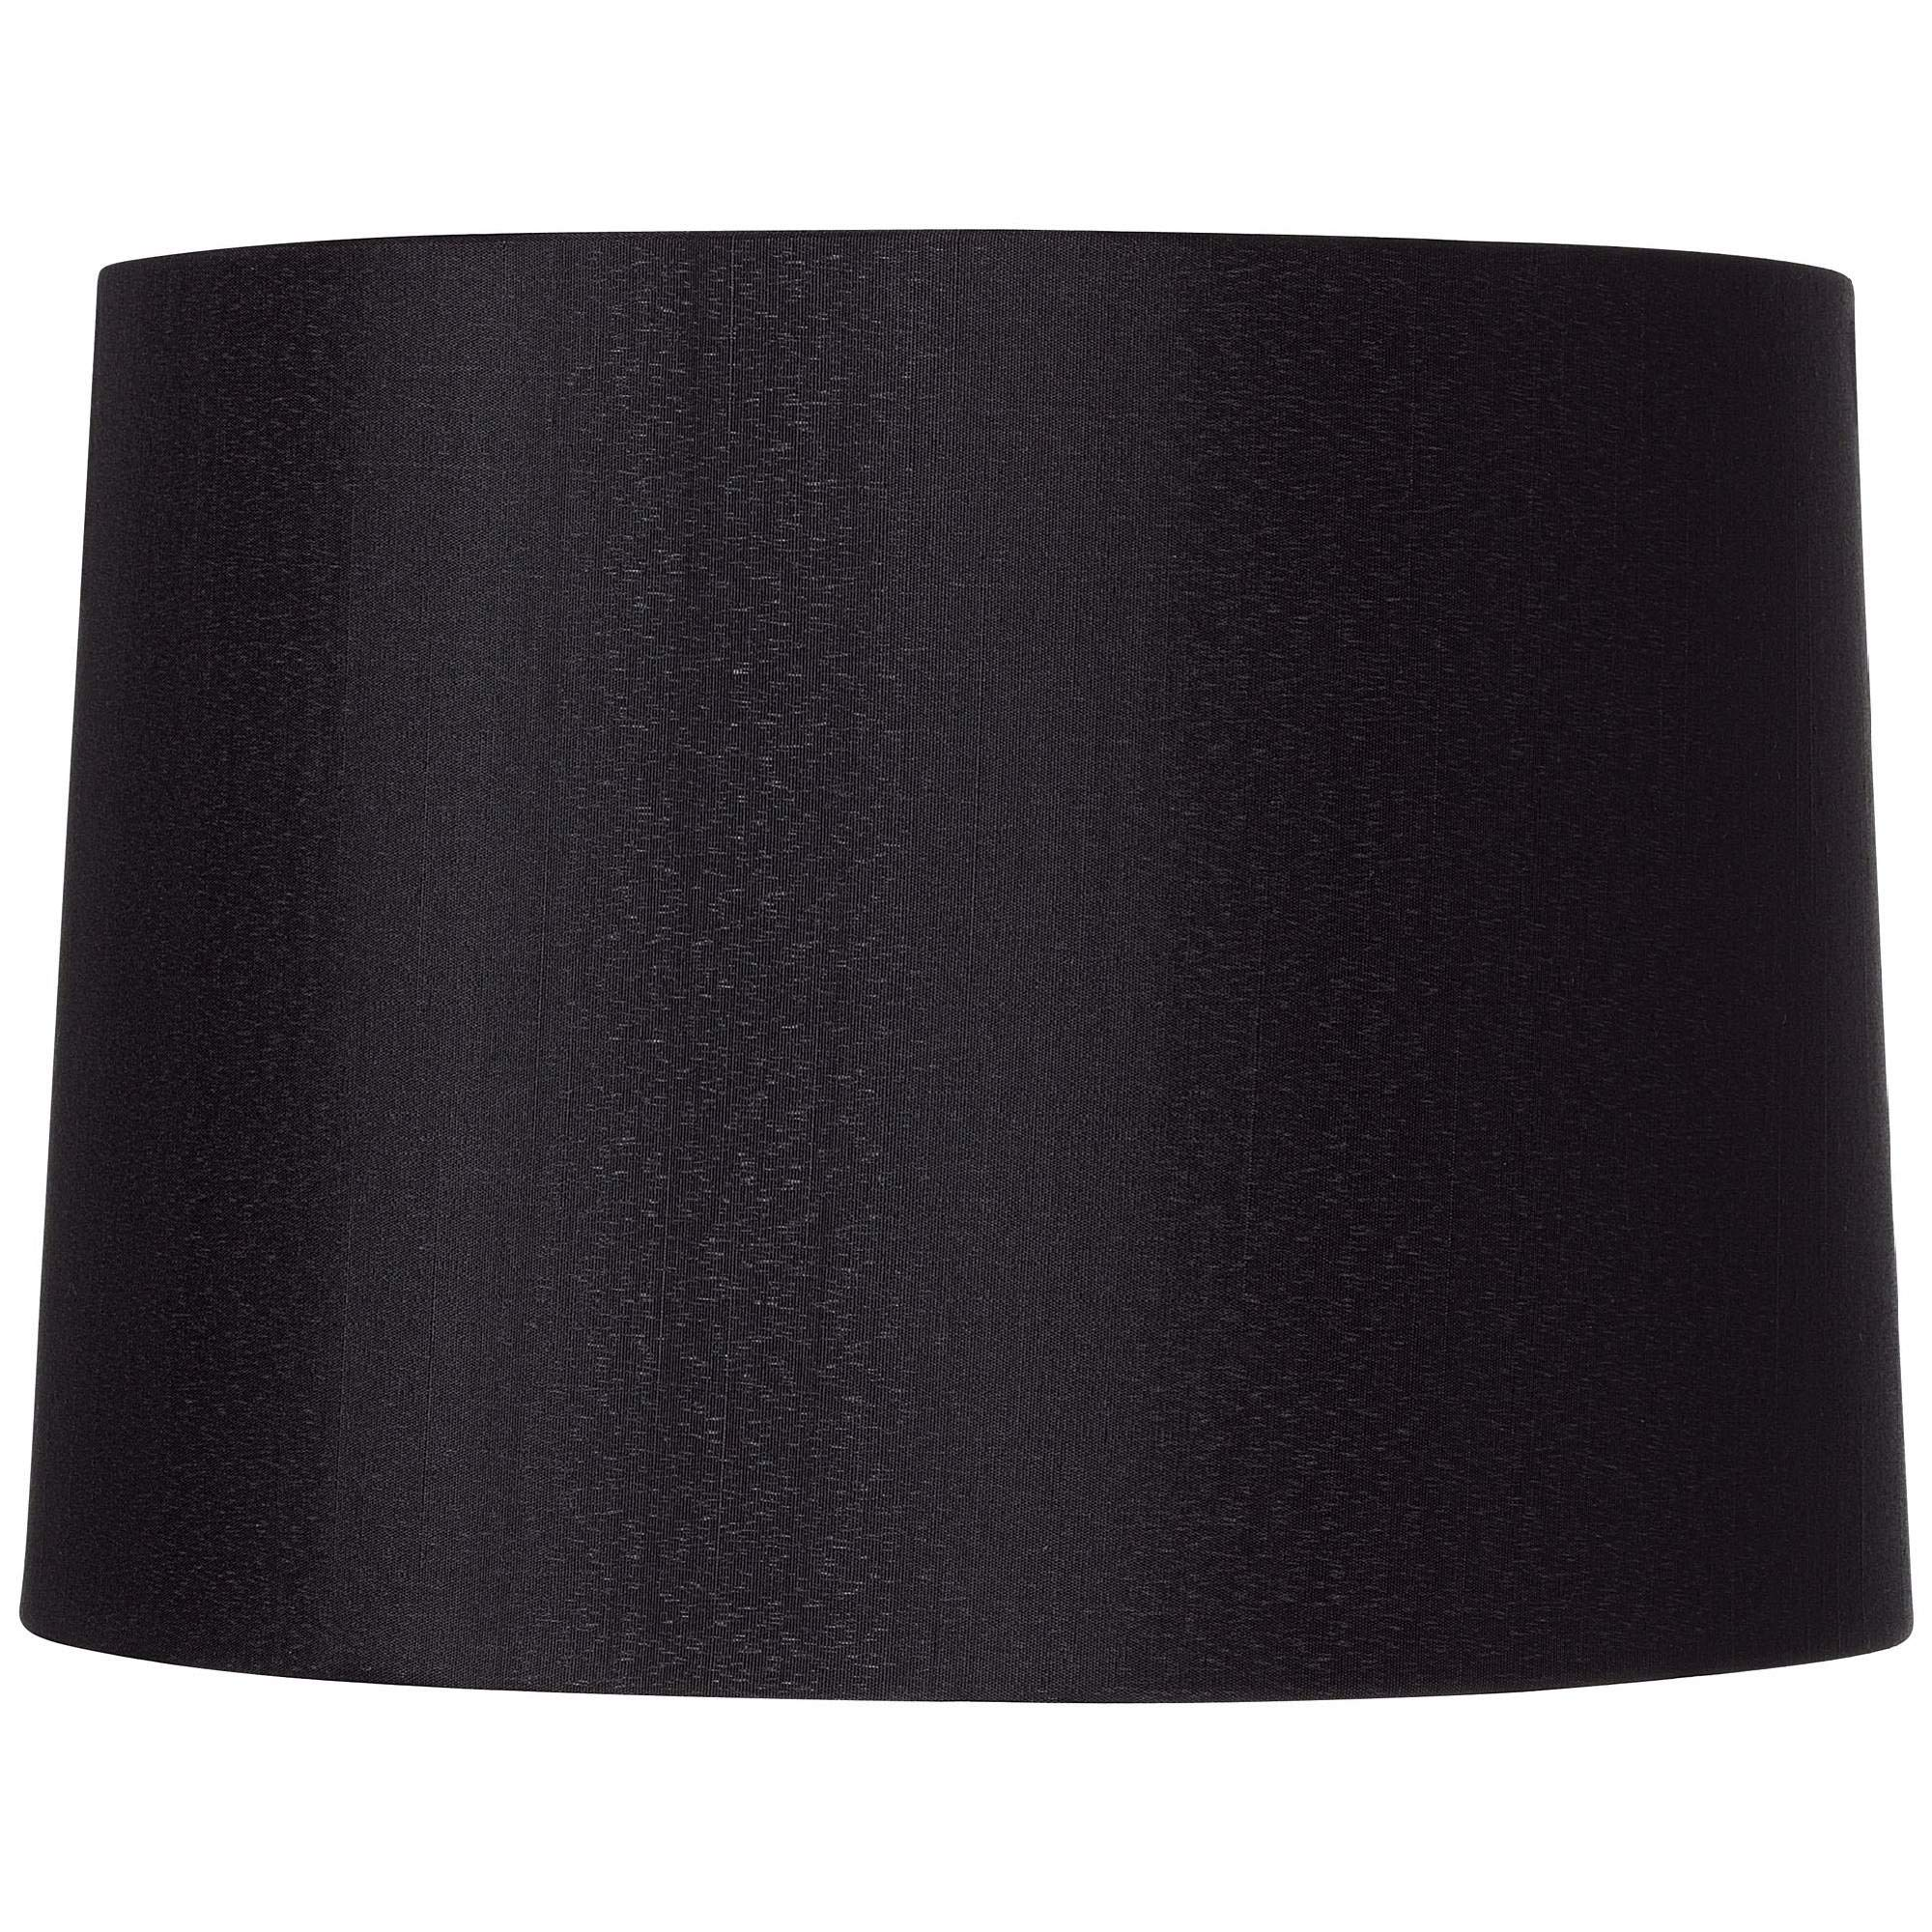 Black Hardback Drum Shade 13x14x10.25 (Spider) - Brentwood by Brentwood